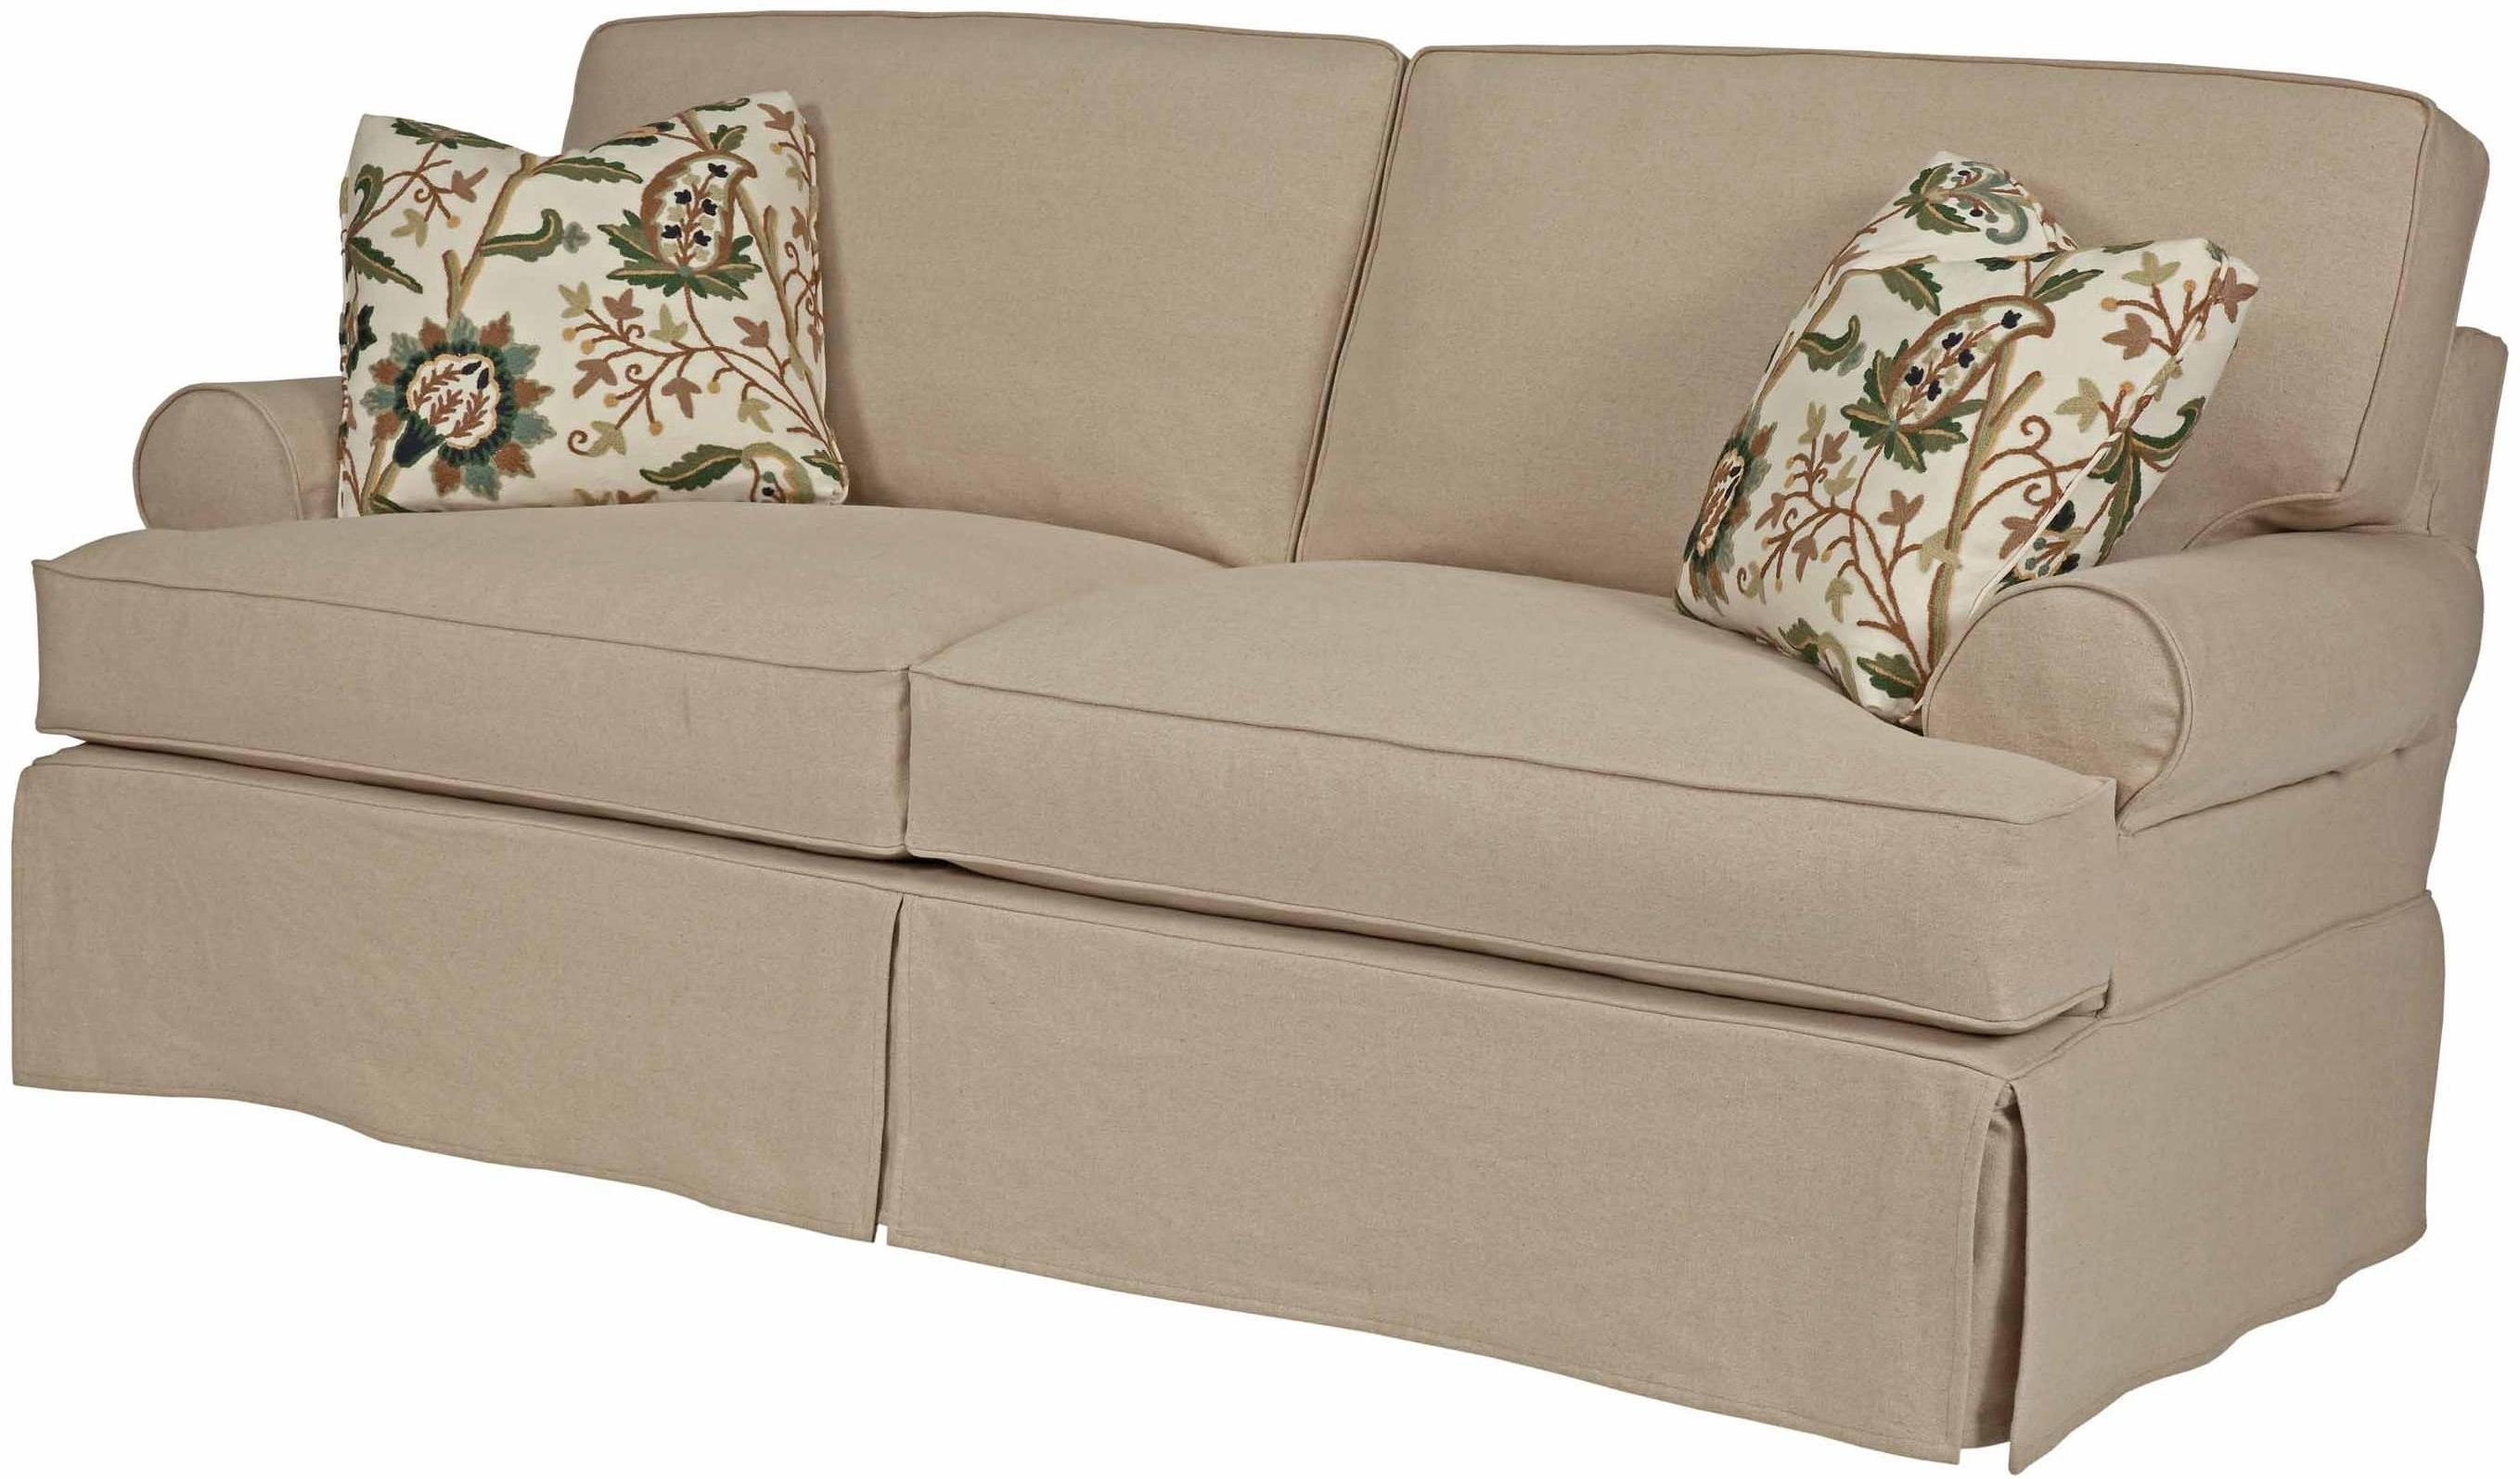 20 Best Slipcovers For 3 Cushion Sofas Sofa Ideas